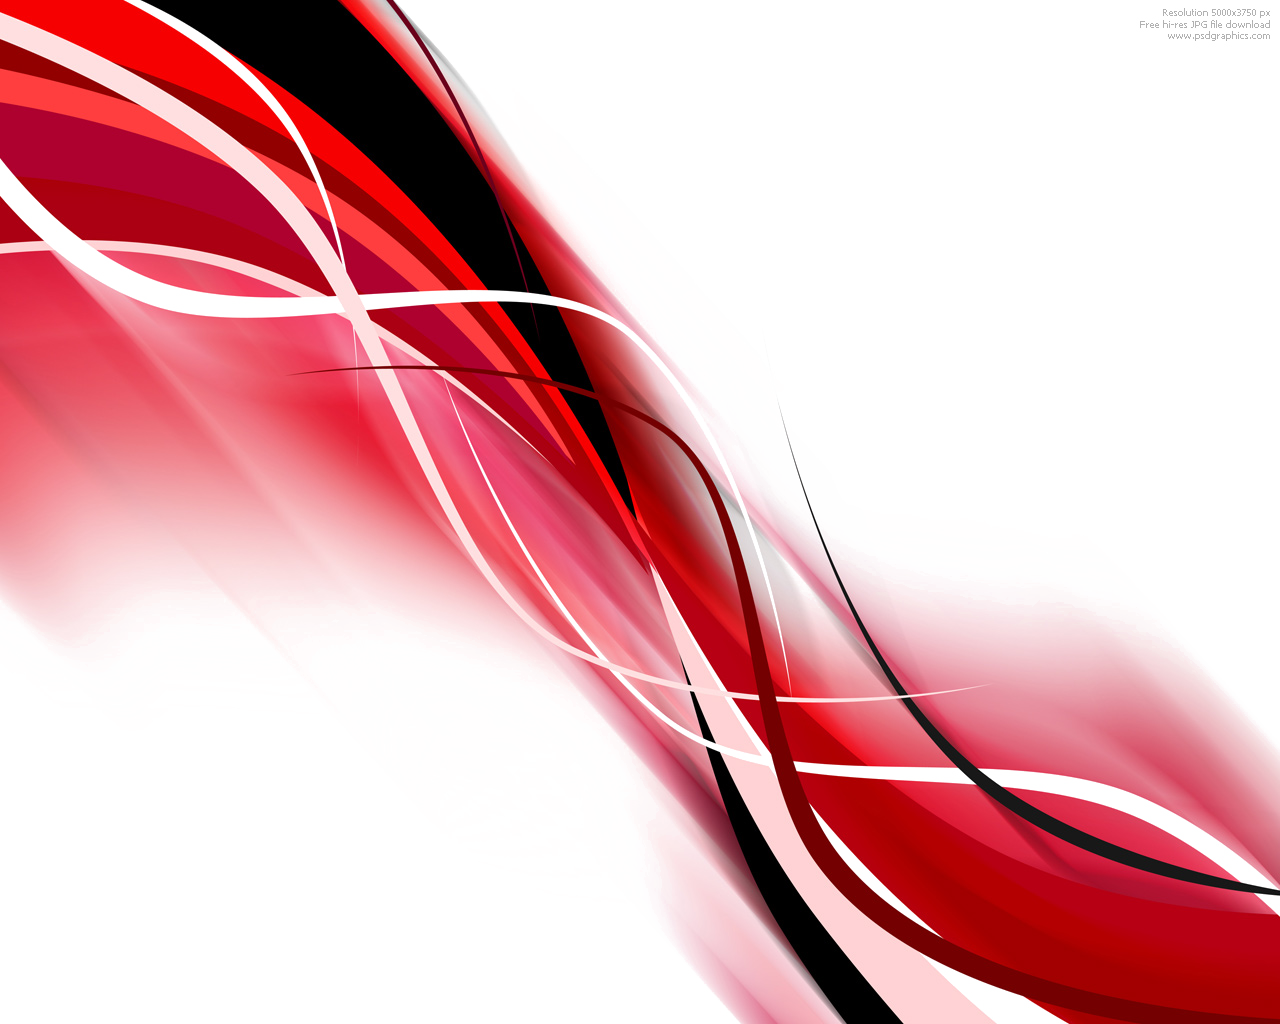 Red abstract png. Lines transparent image mart